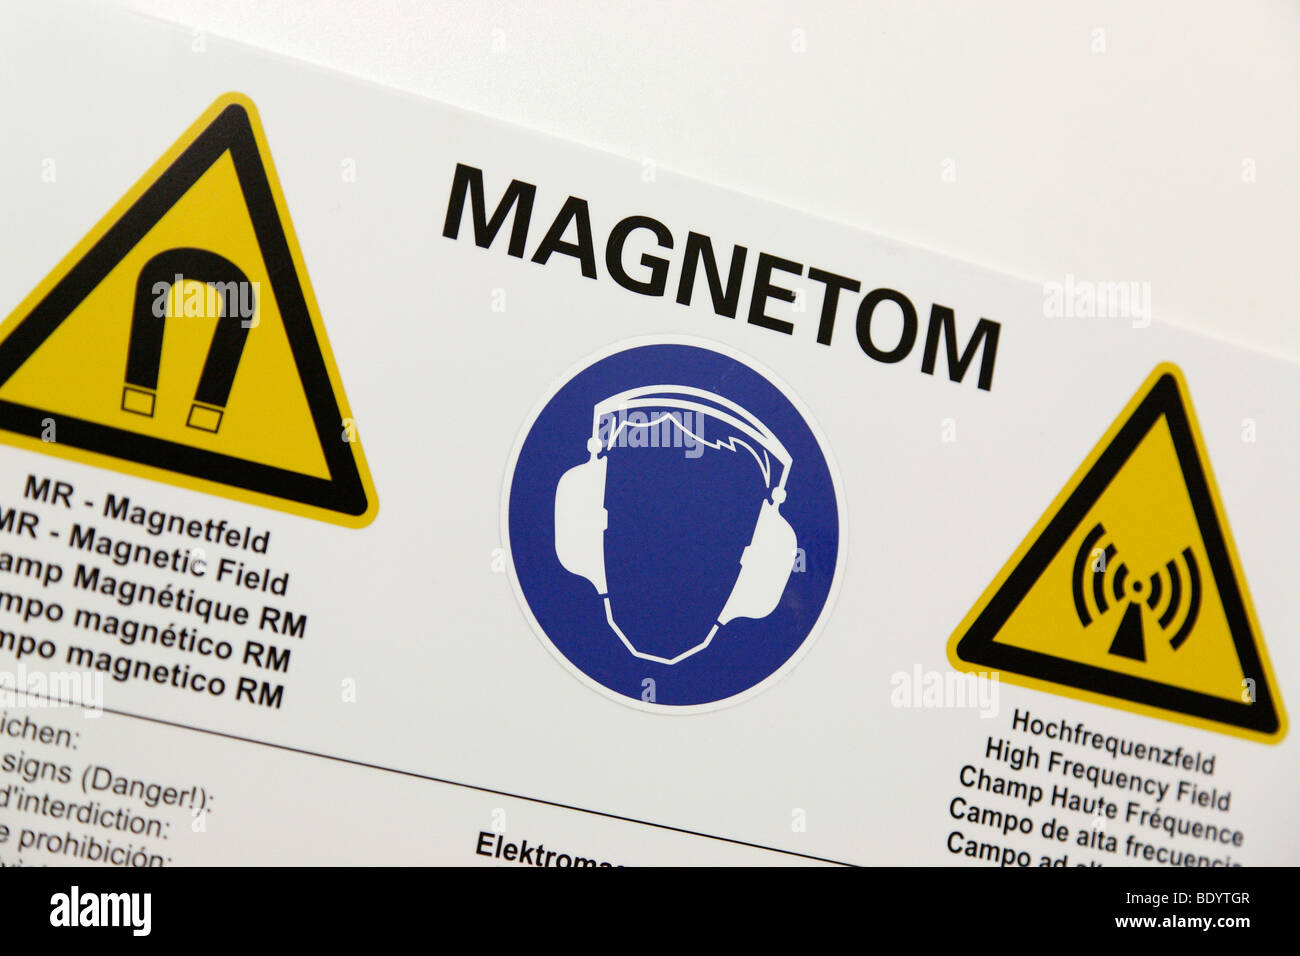 Magnetic Field warning sign - Stock Image